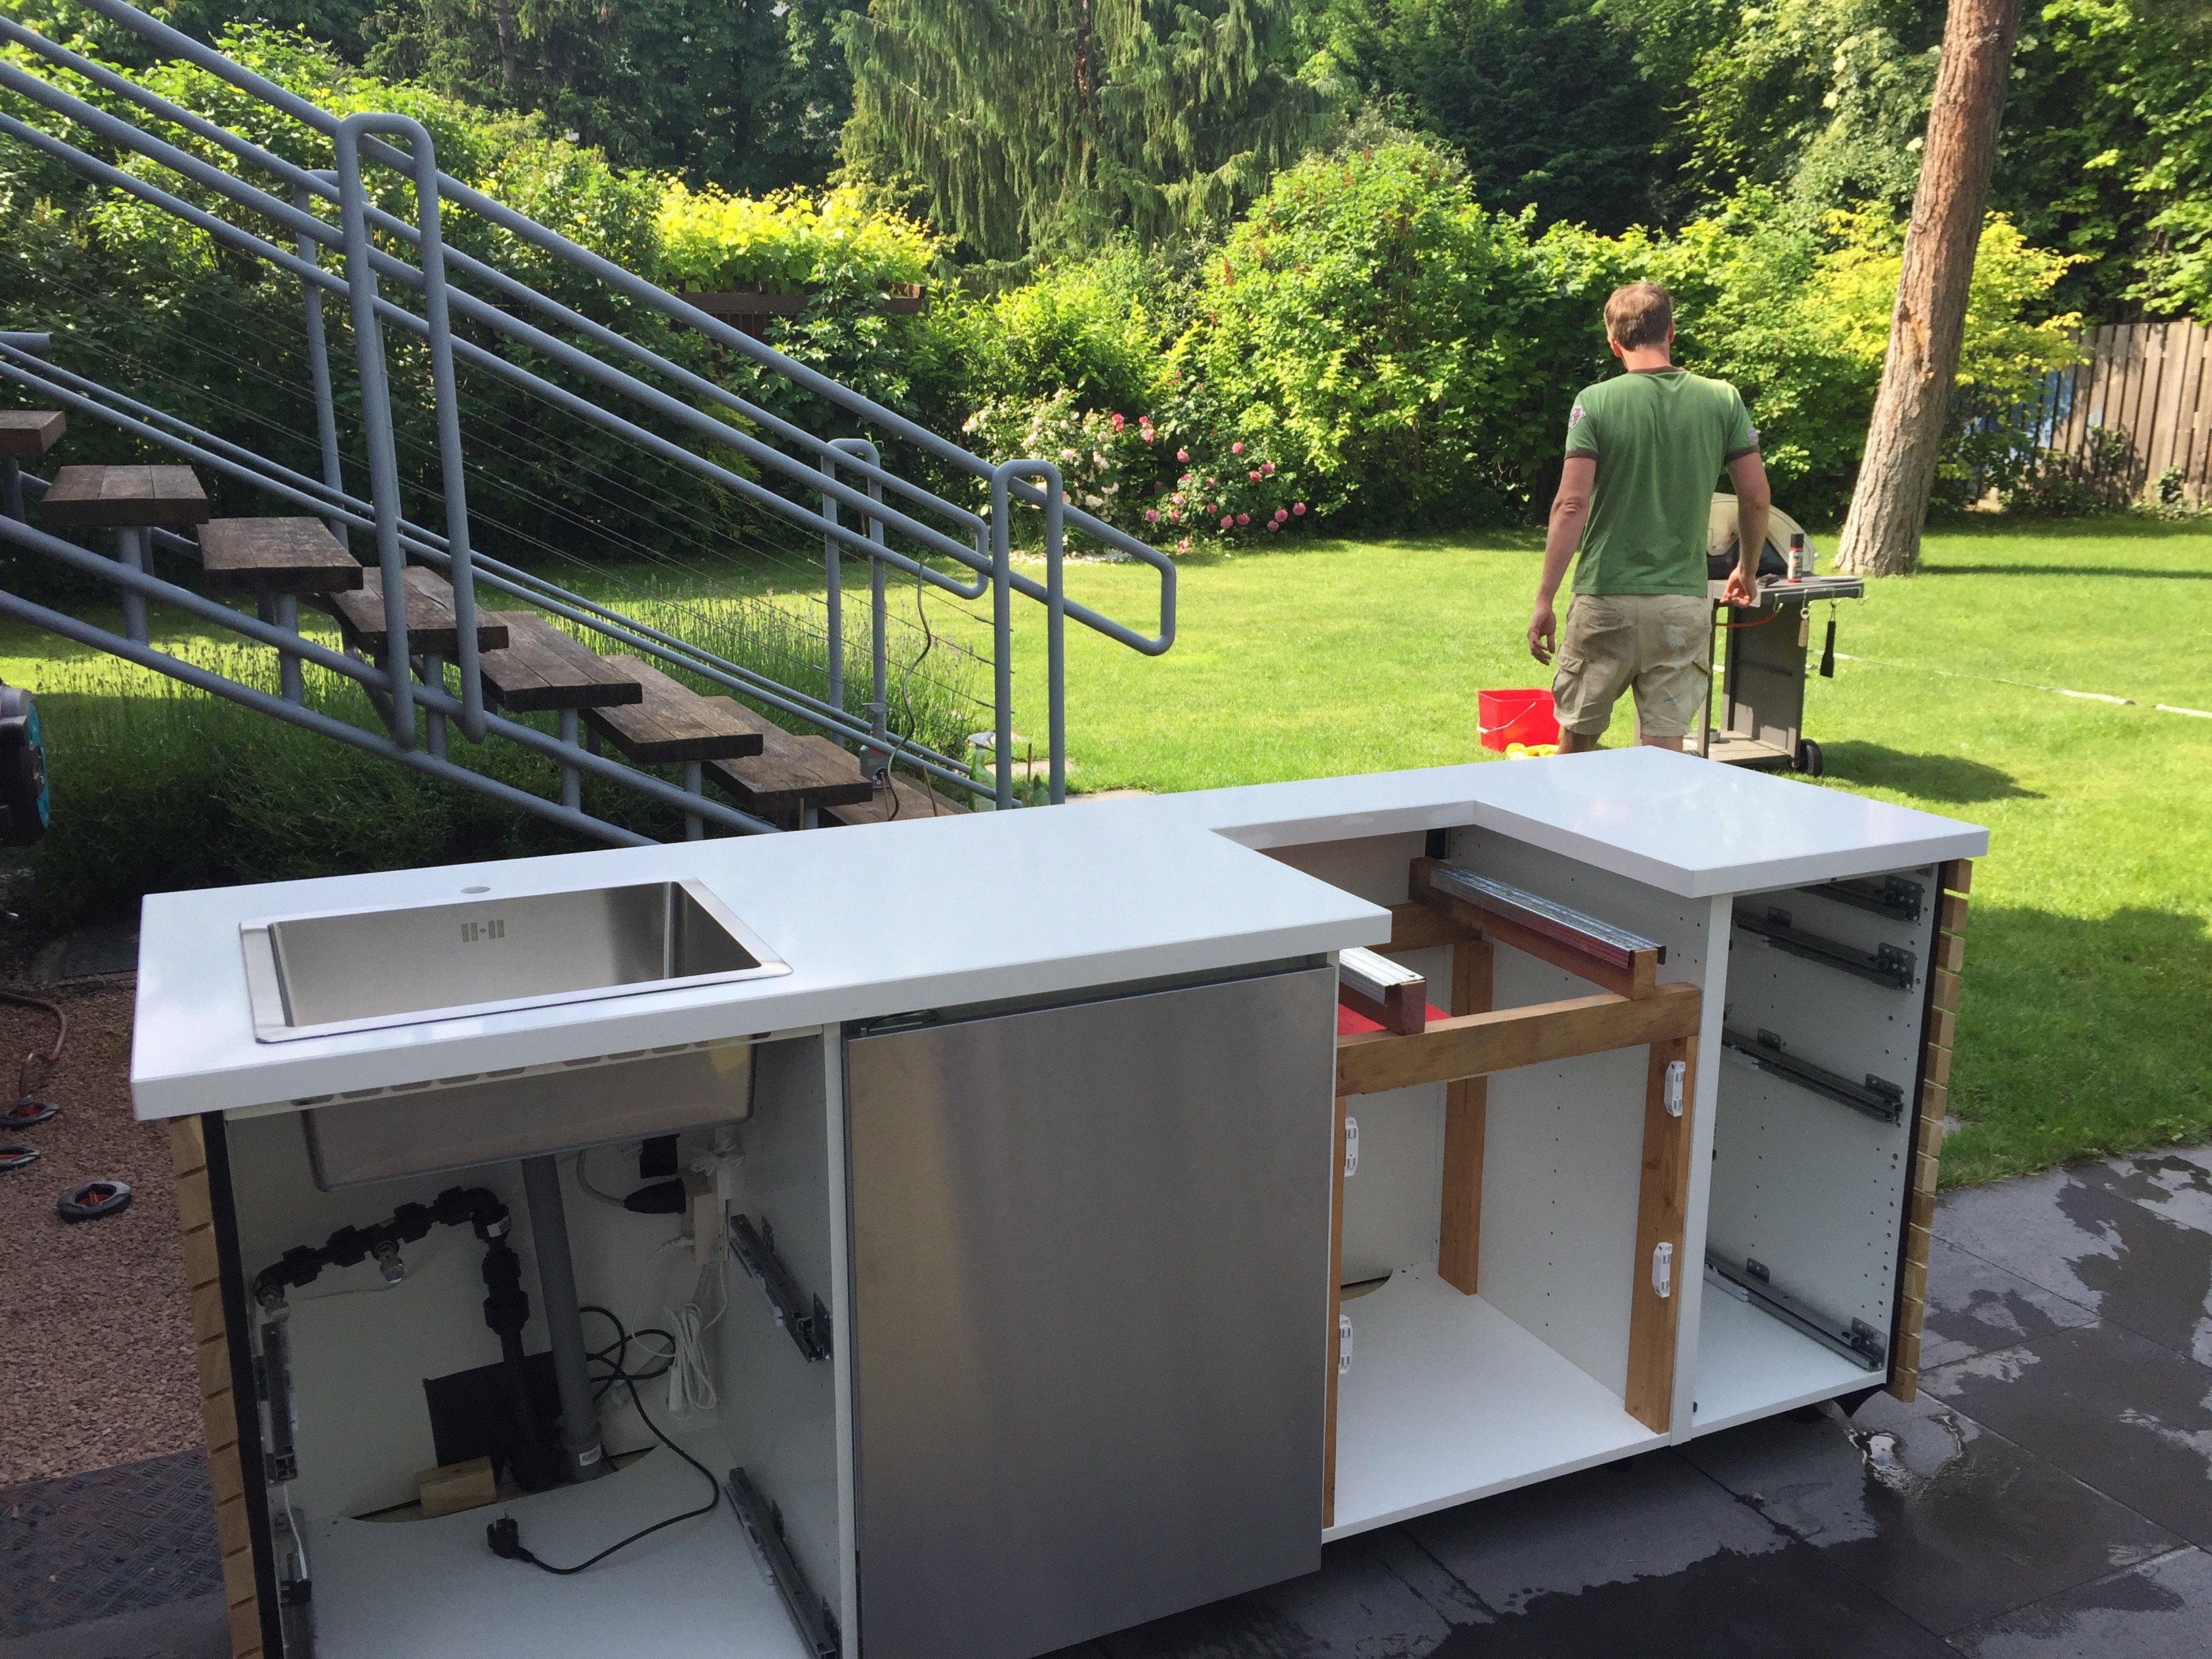 Outdoorküche Mit Gasgrill : Diy outdoorküche ikea hack rut morawetz